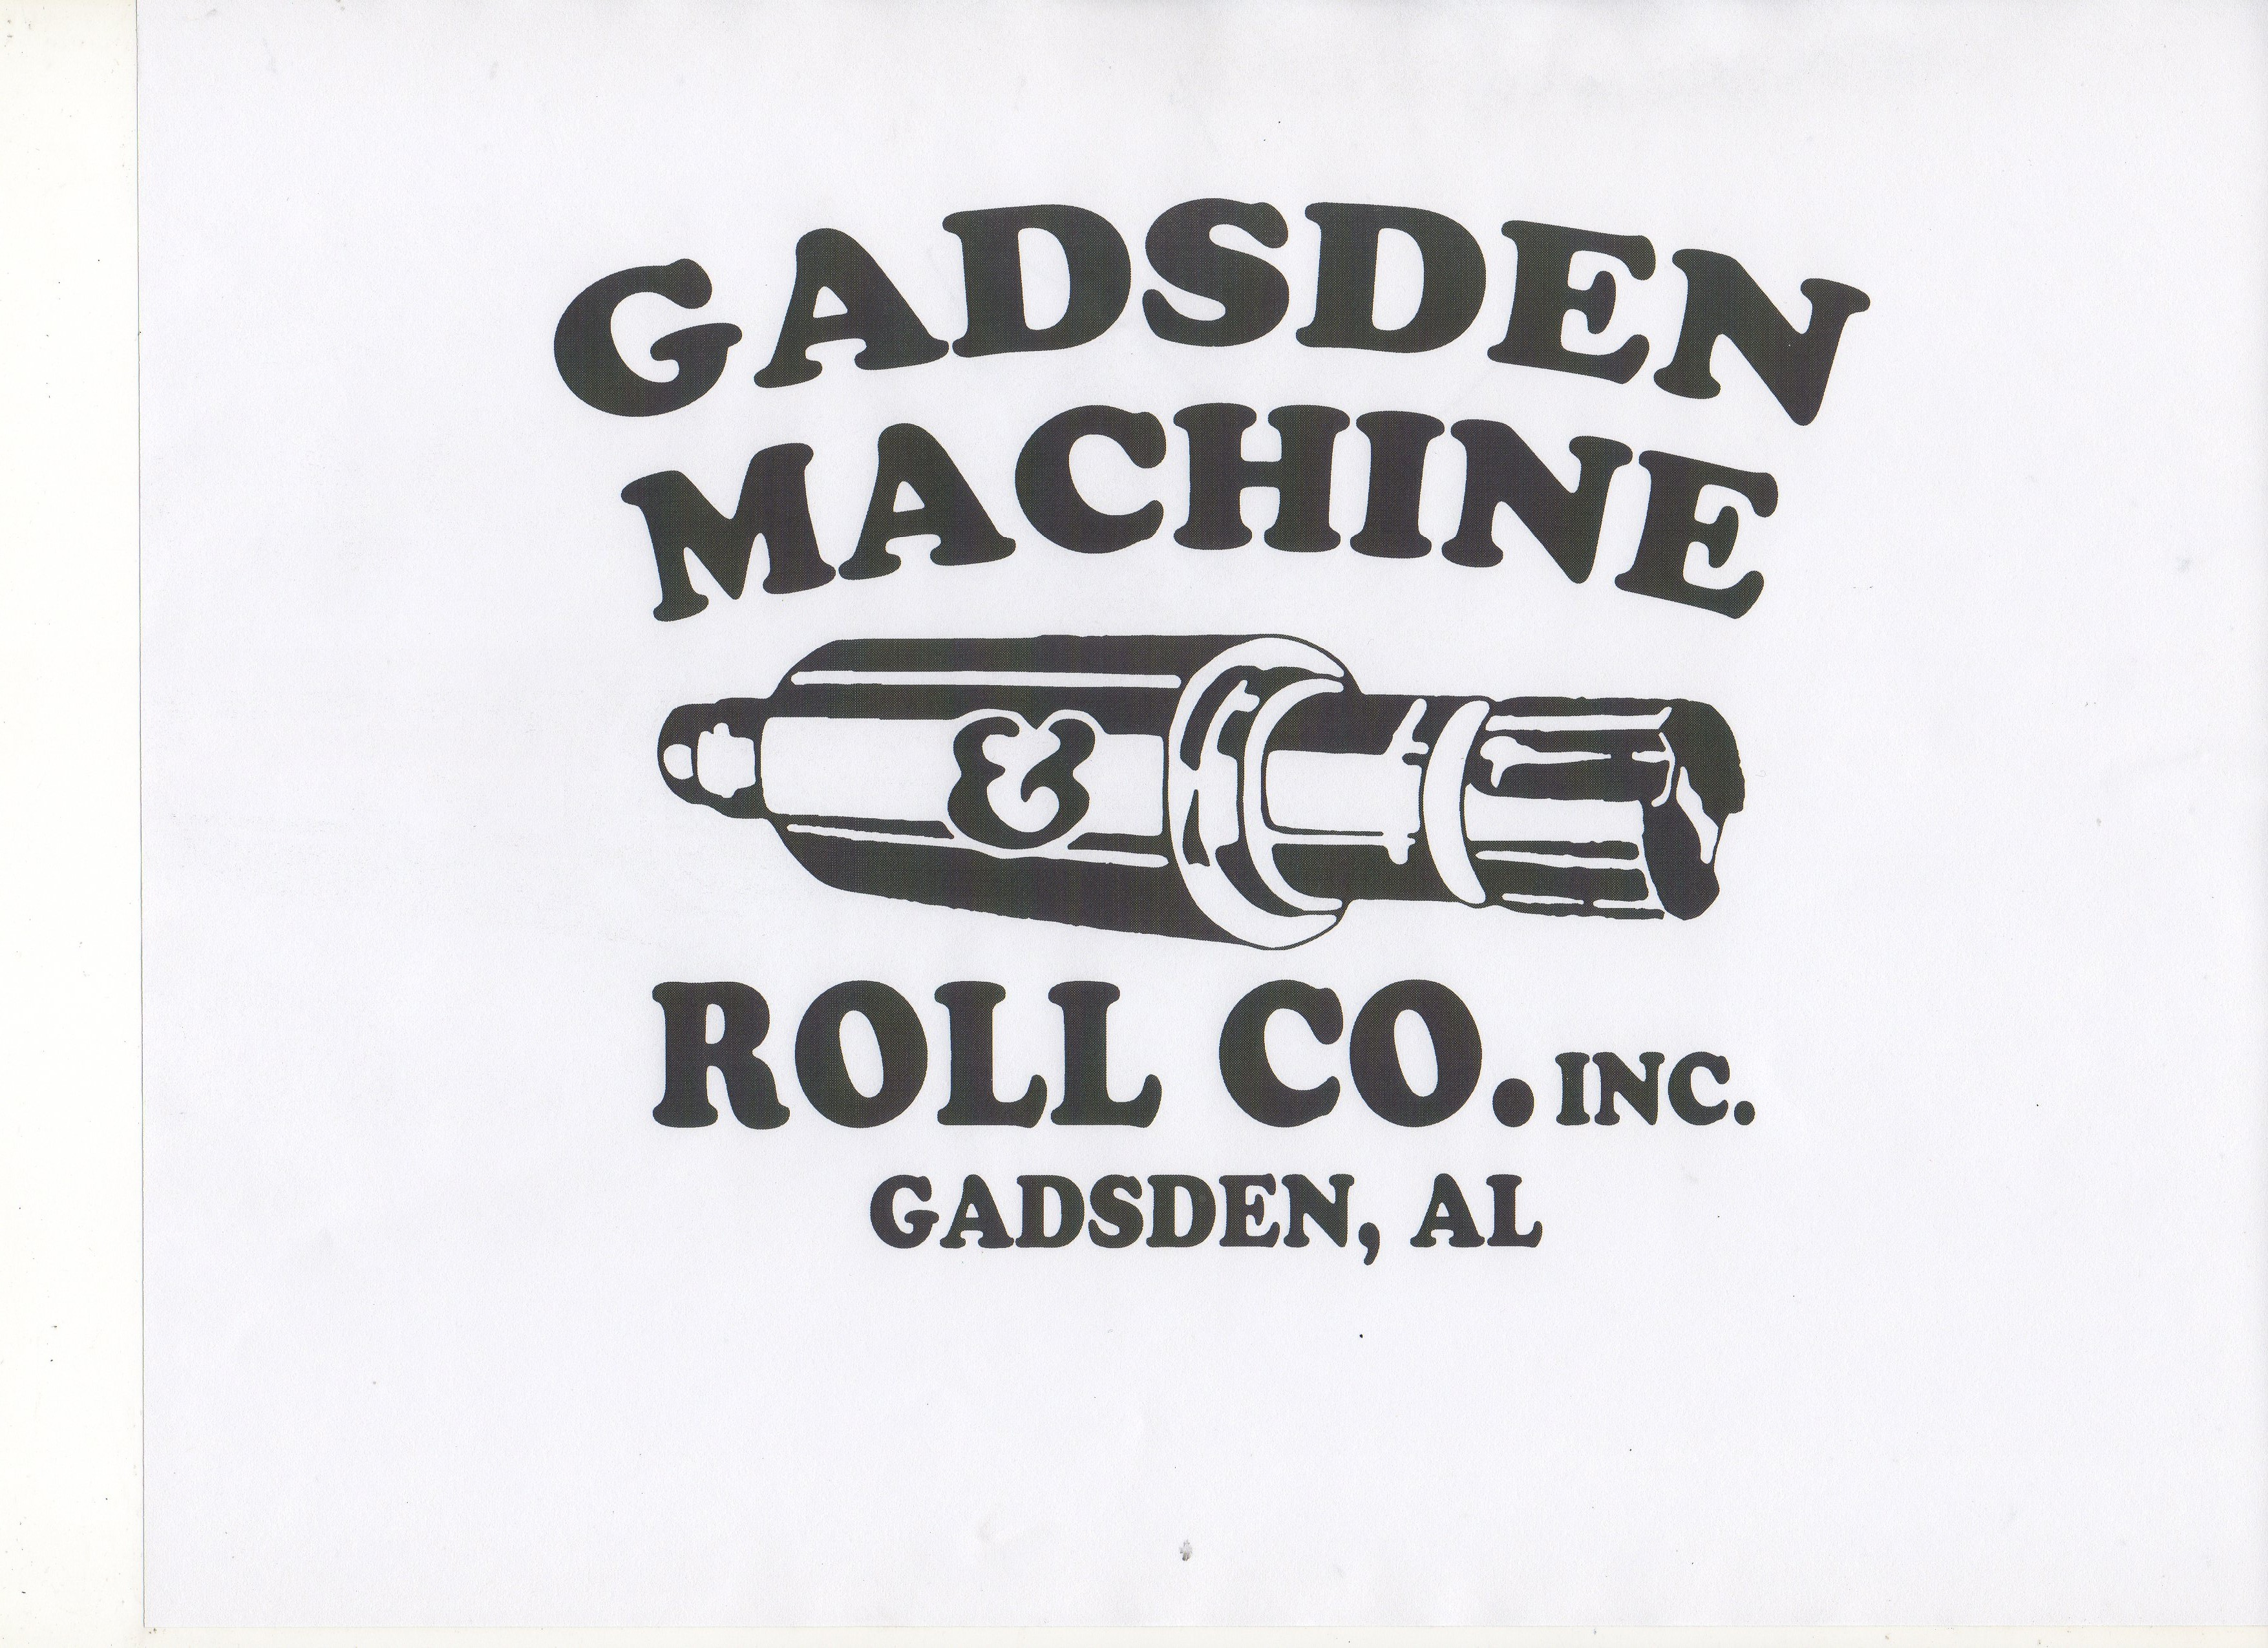 Gadsden Machine & Roll Co., Inc. in Gadsden, AL. Rebuilt industrial machining equipment & hydraulics.